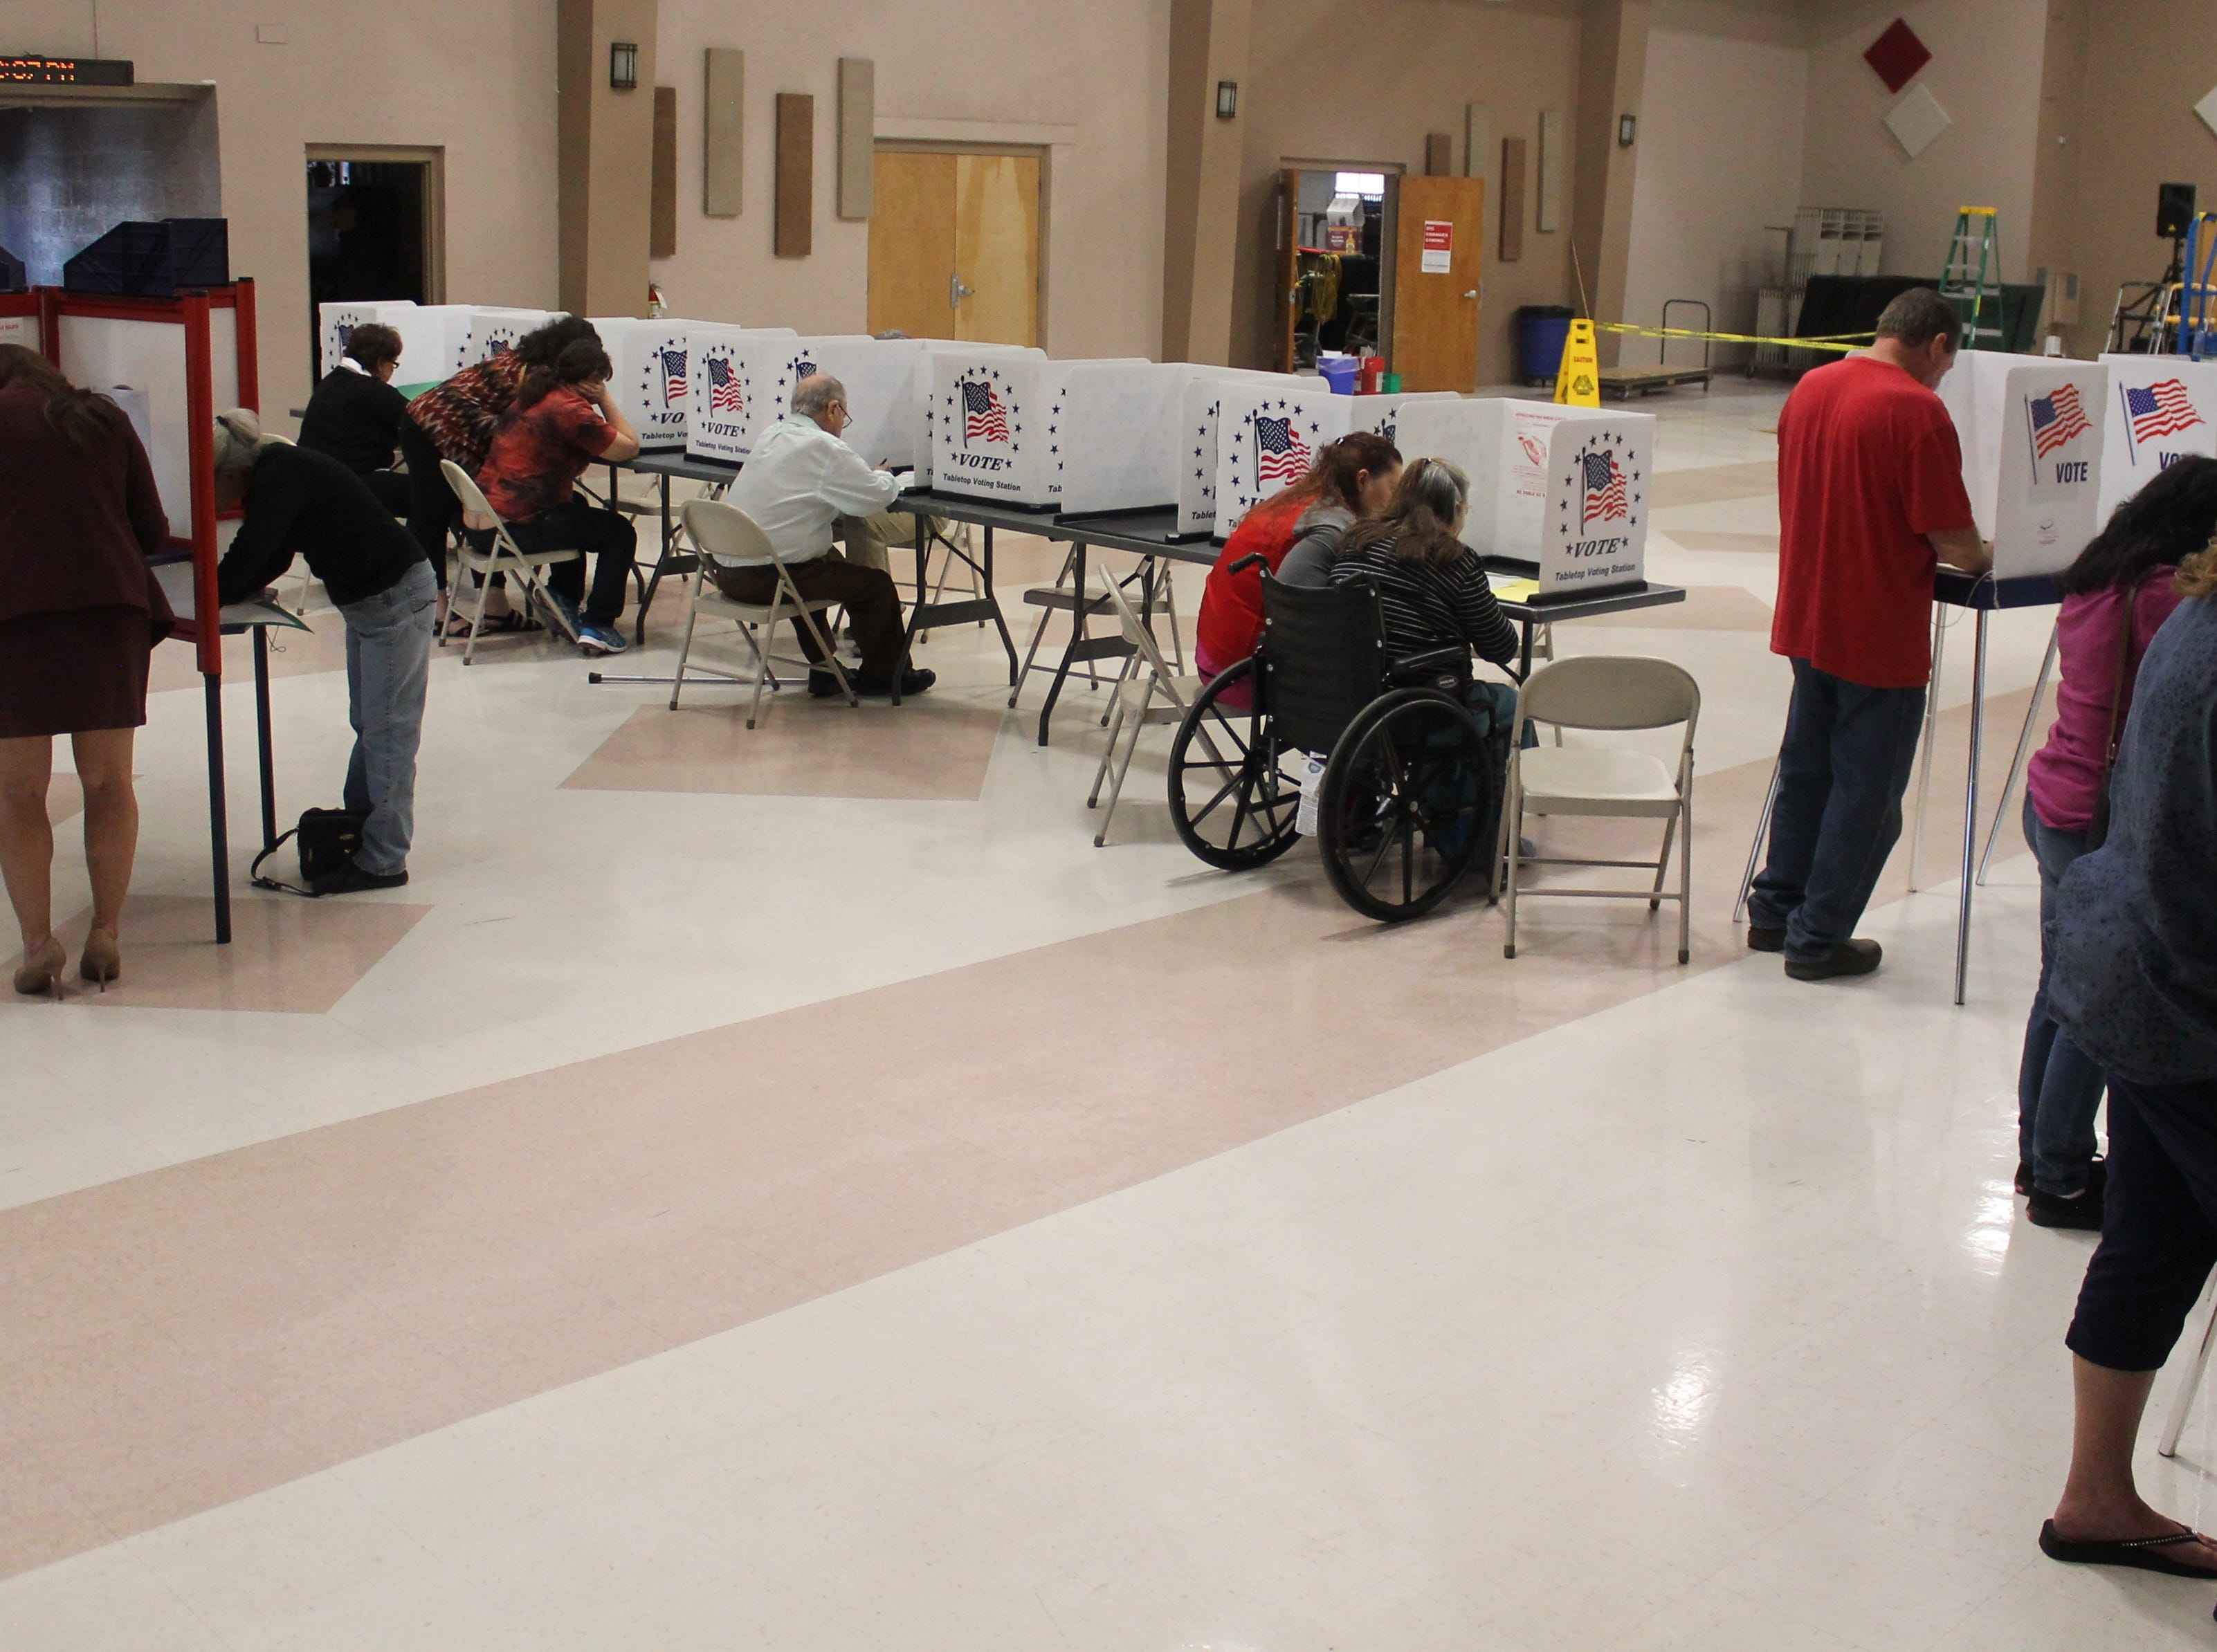 Many Alamogordo poll workers said that this year's midterm election had an impressively high turnout, especially for a midterm election.